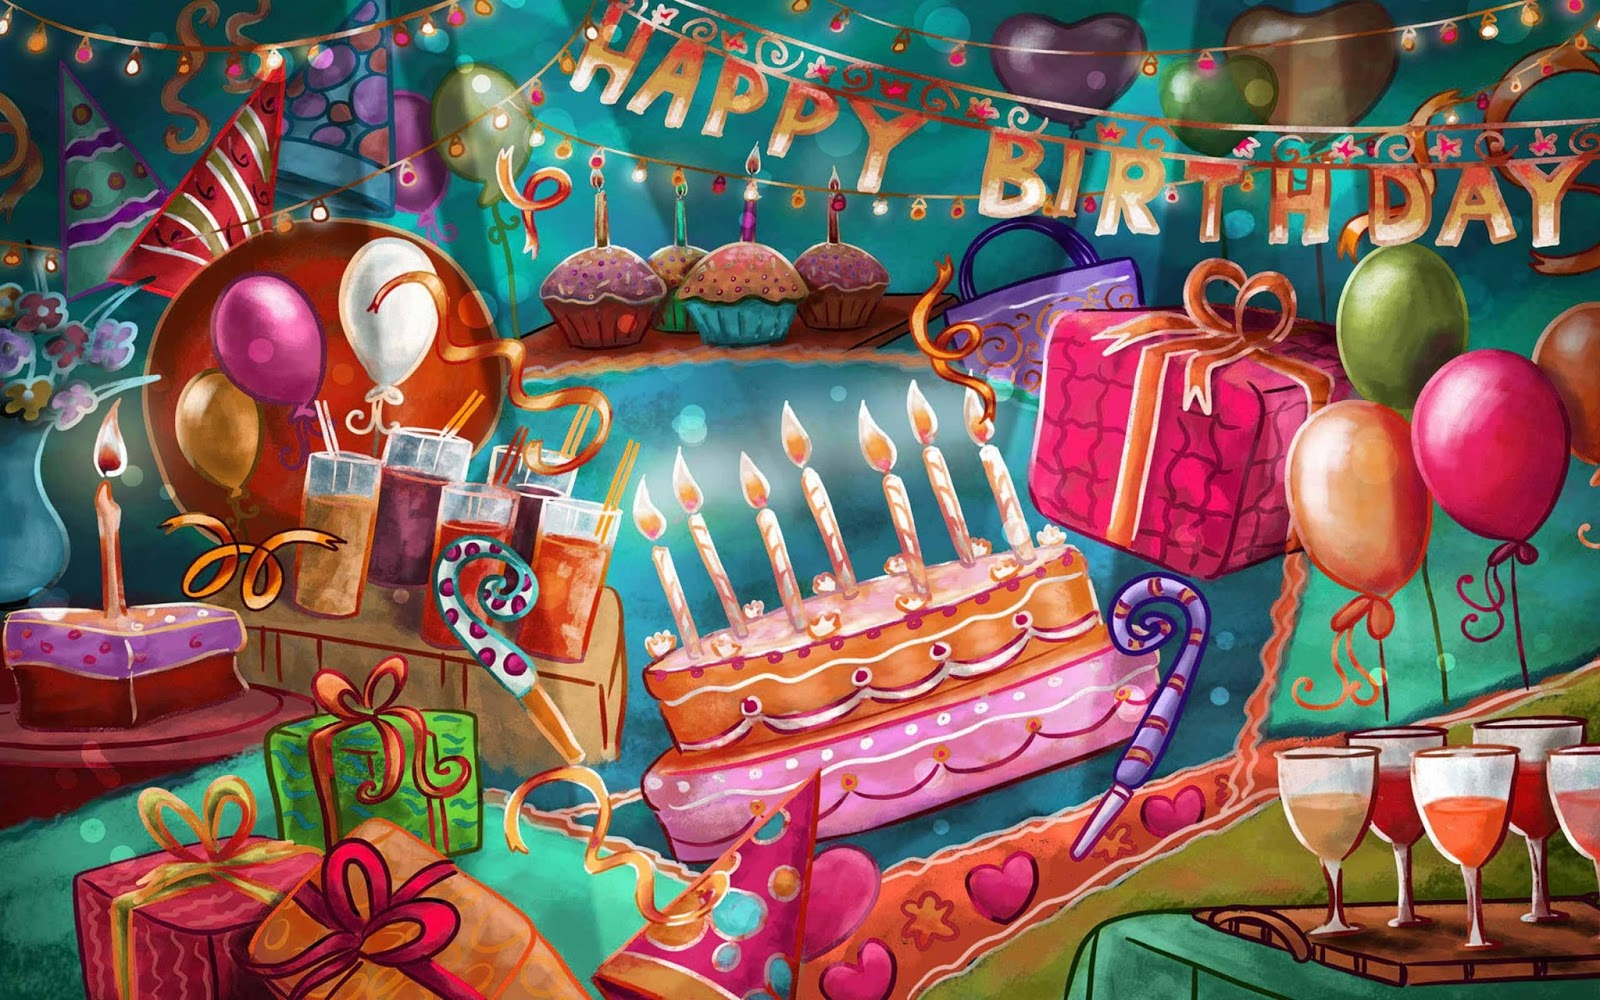 Happy birthday greetings wishes high resolution hd 2013 - Happy birthday card wallpaper ...